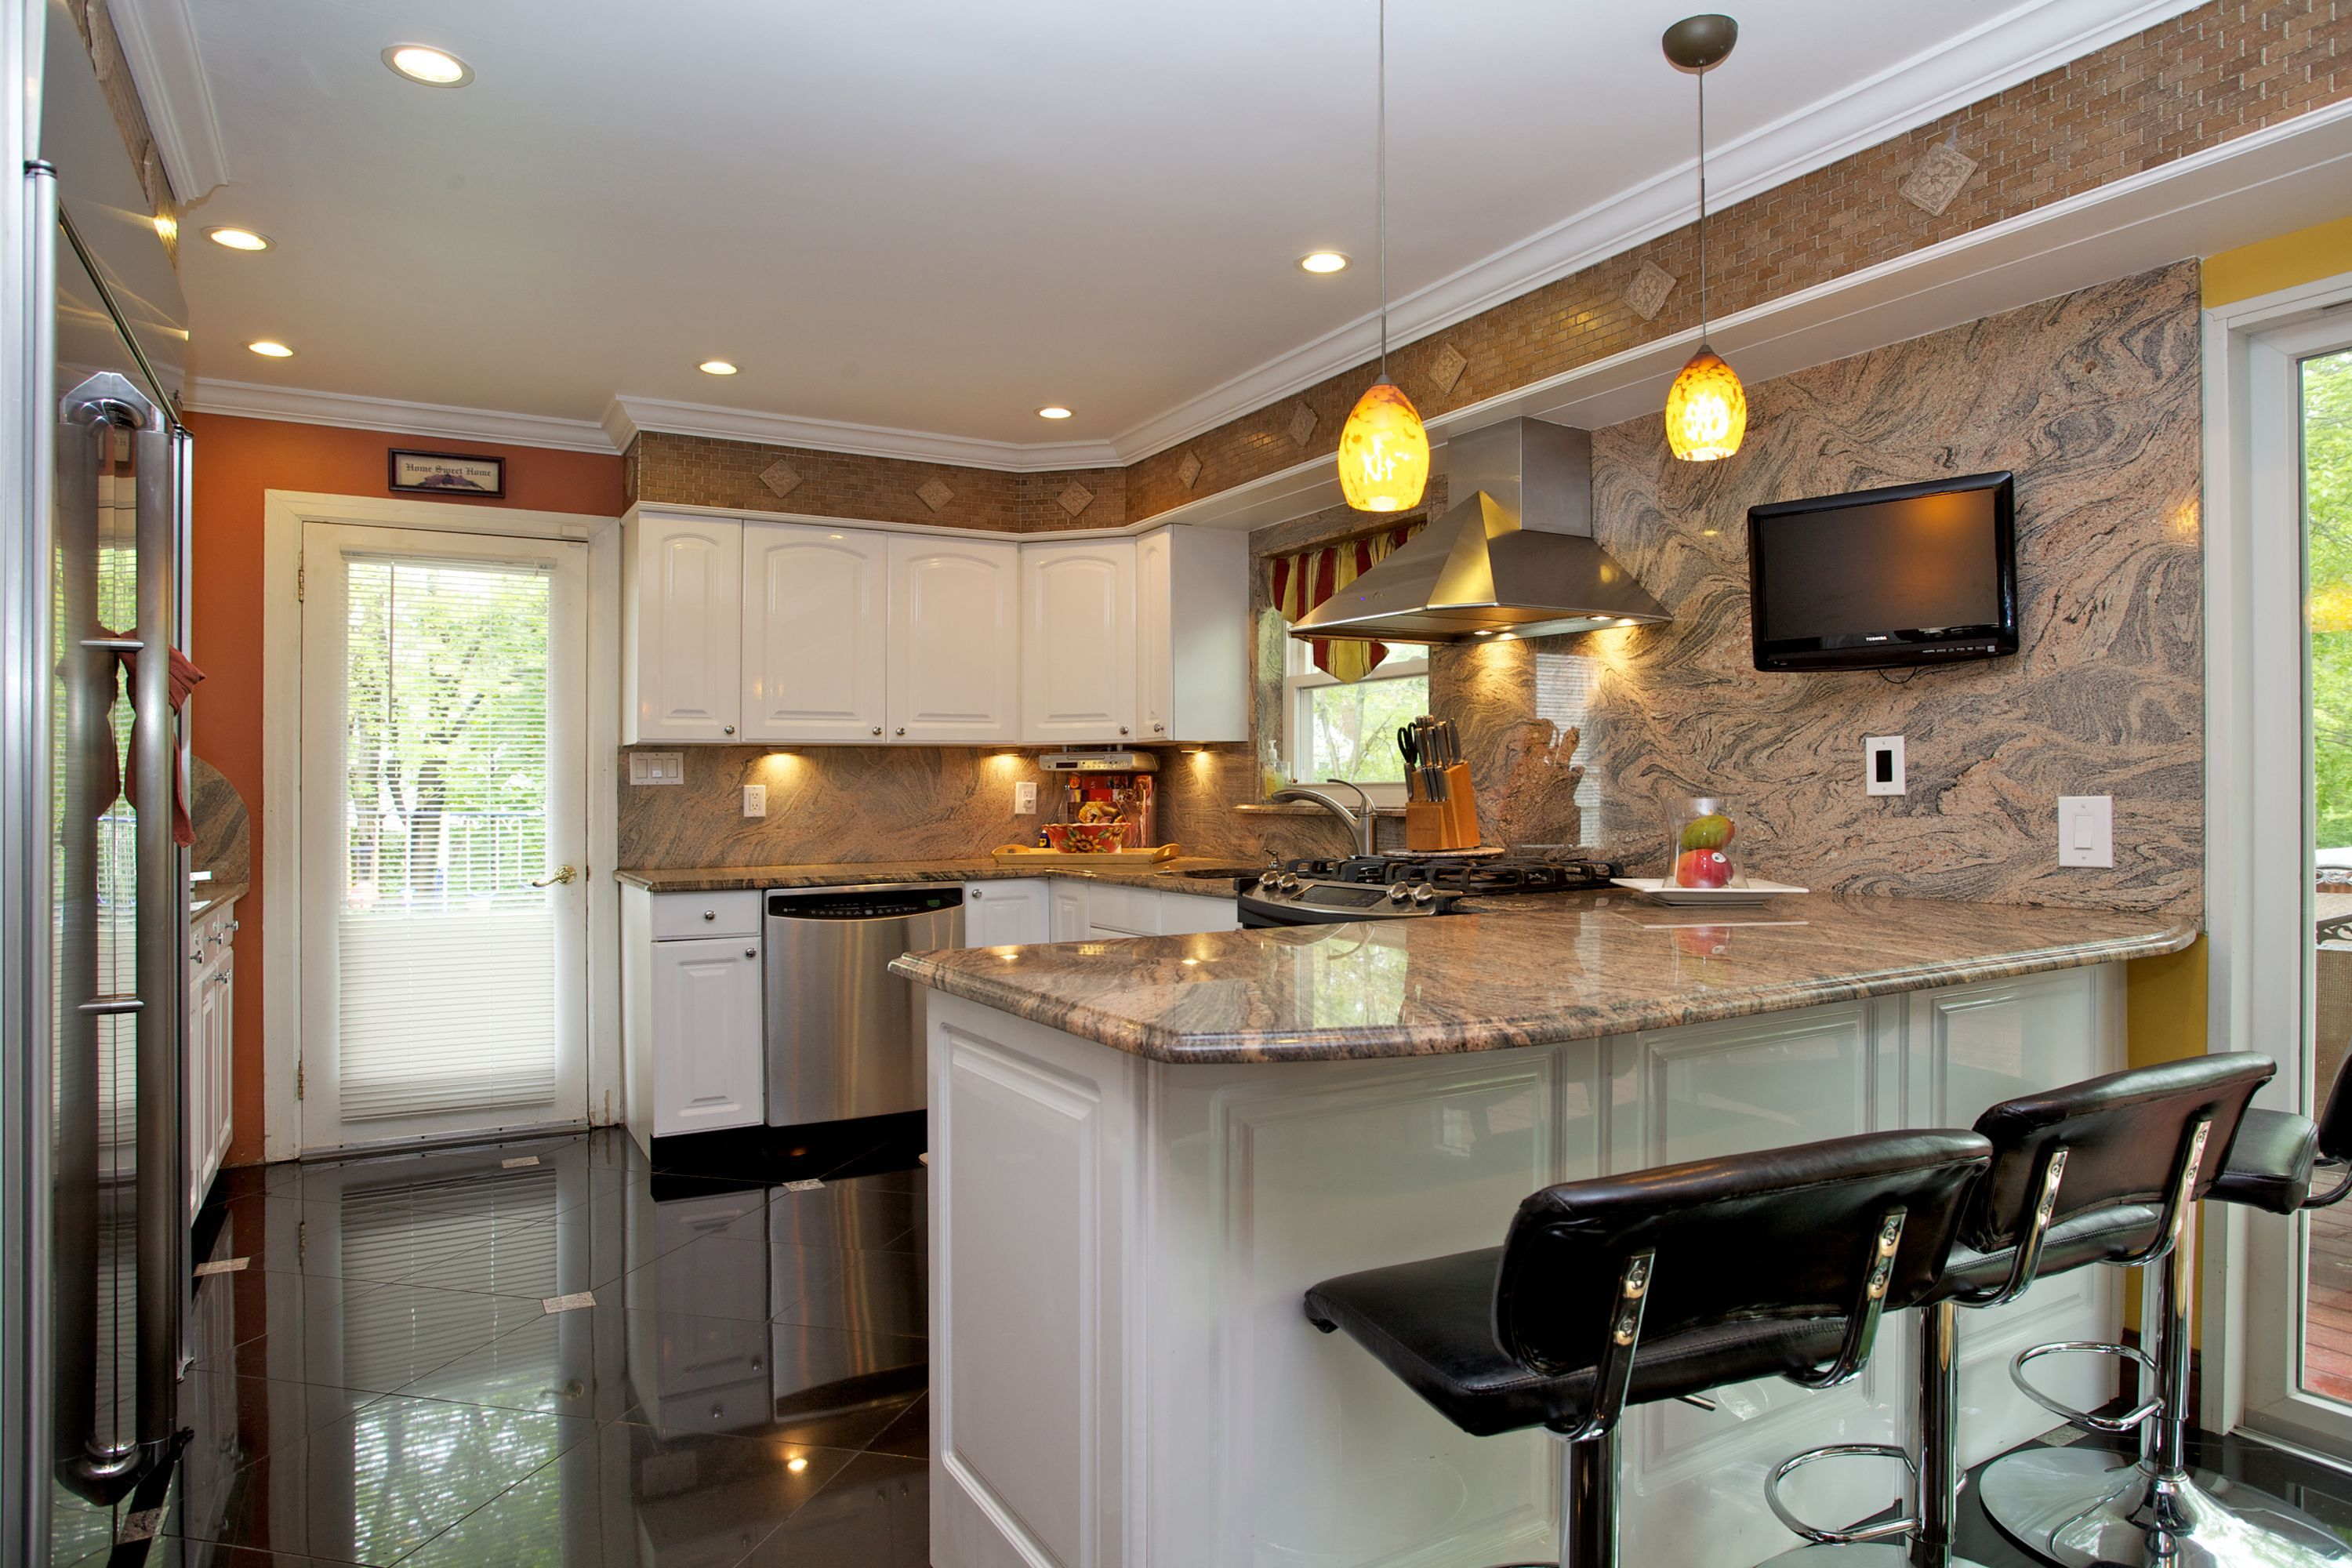 Kitchen In The Magnificent Built Brick Mason Stucco In Fair Lawn Nj Kitchen Brick Mason Home Decor